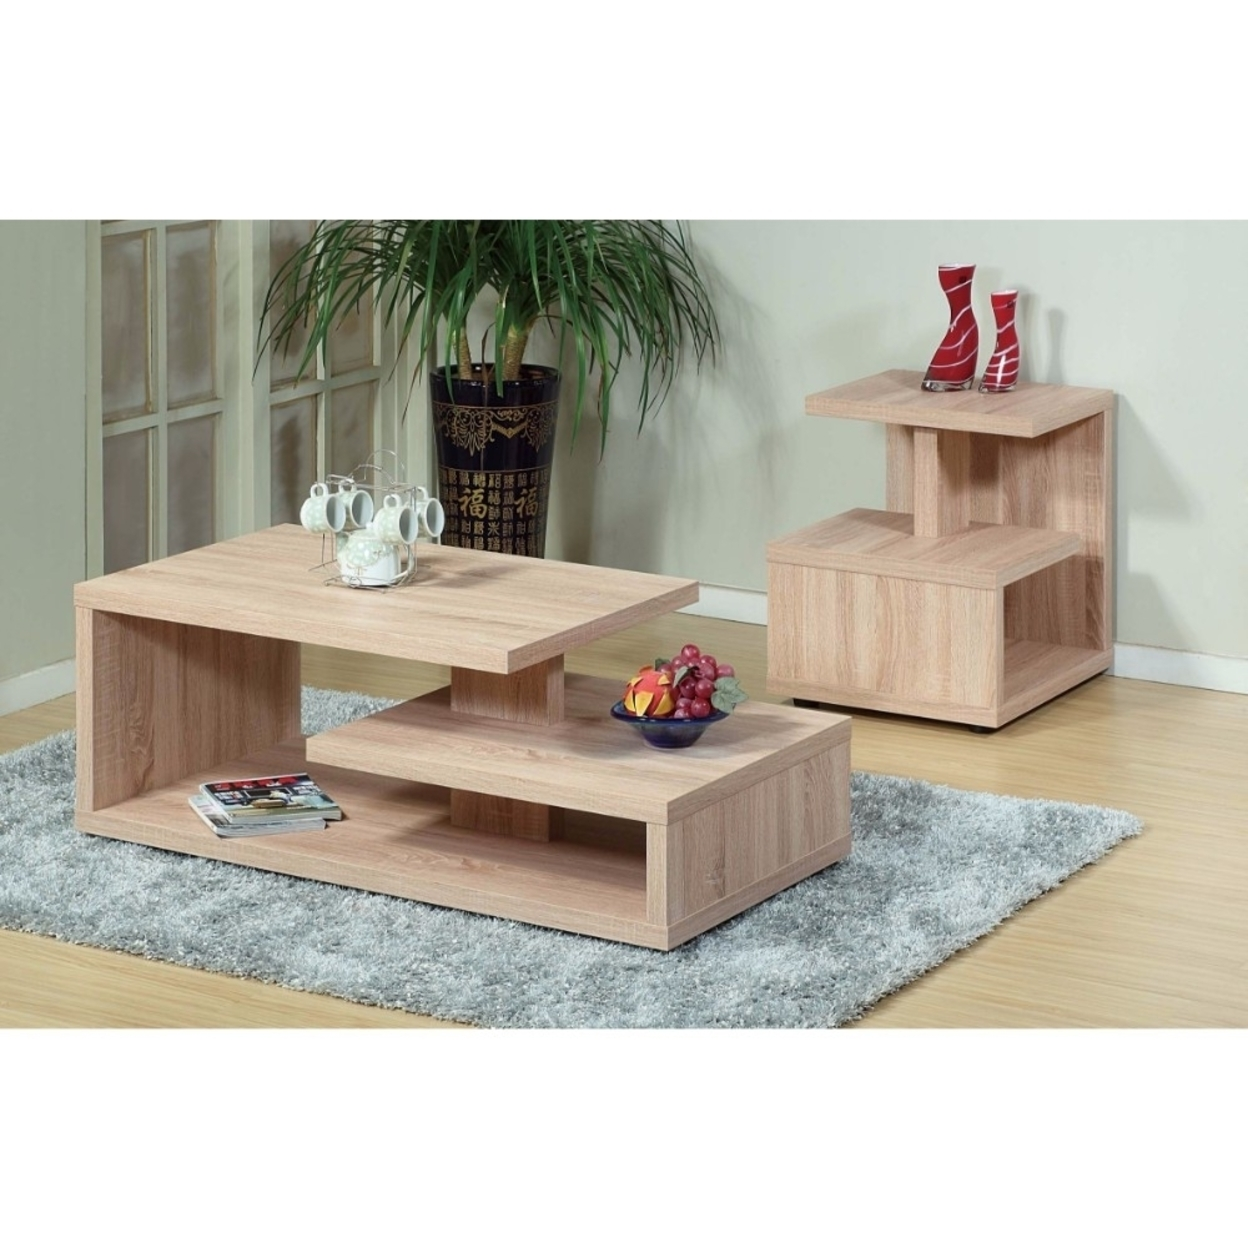 Modern Design Coffee & End Table, Set of 2 59f81c06e2246173d5112a04